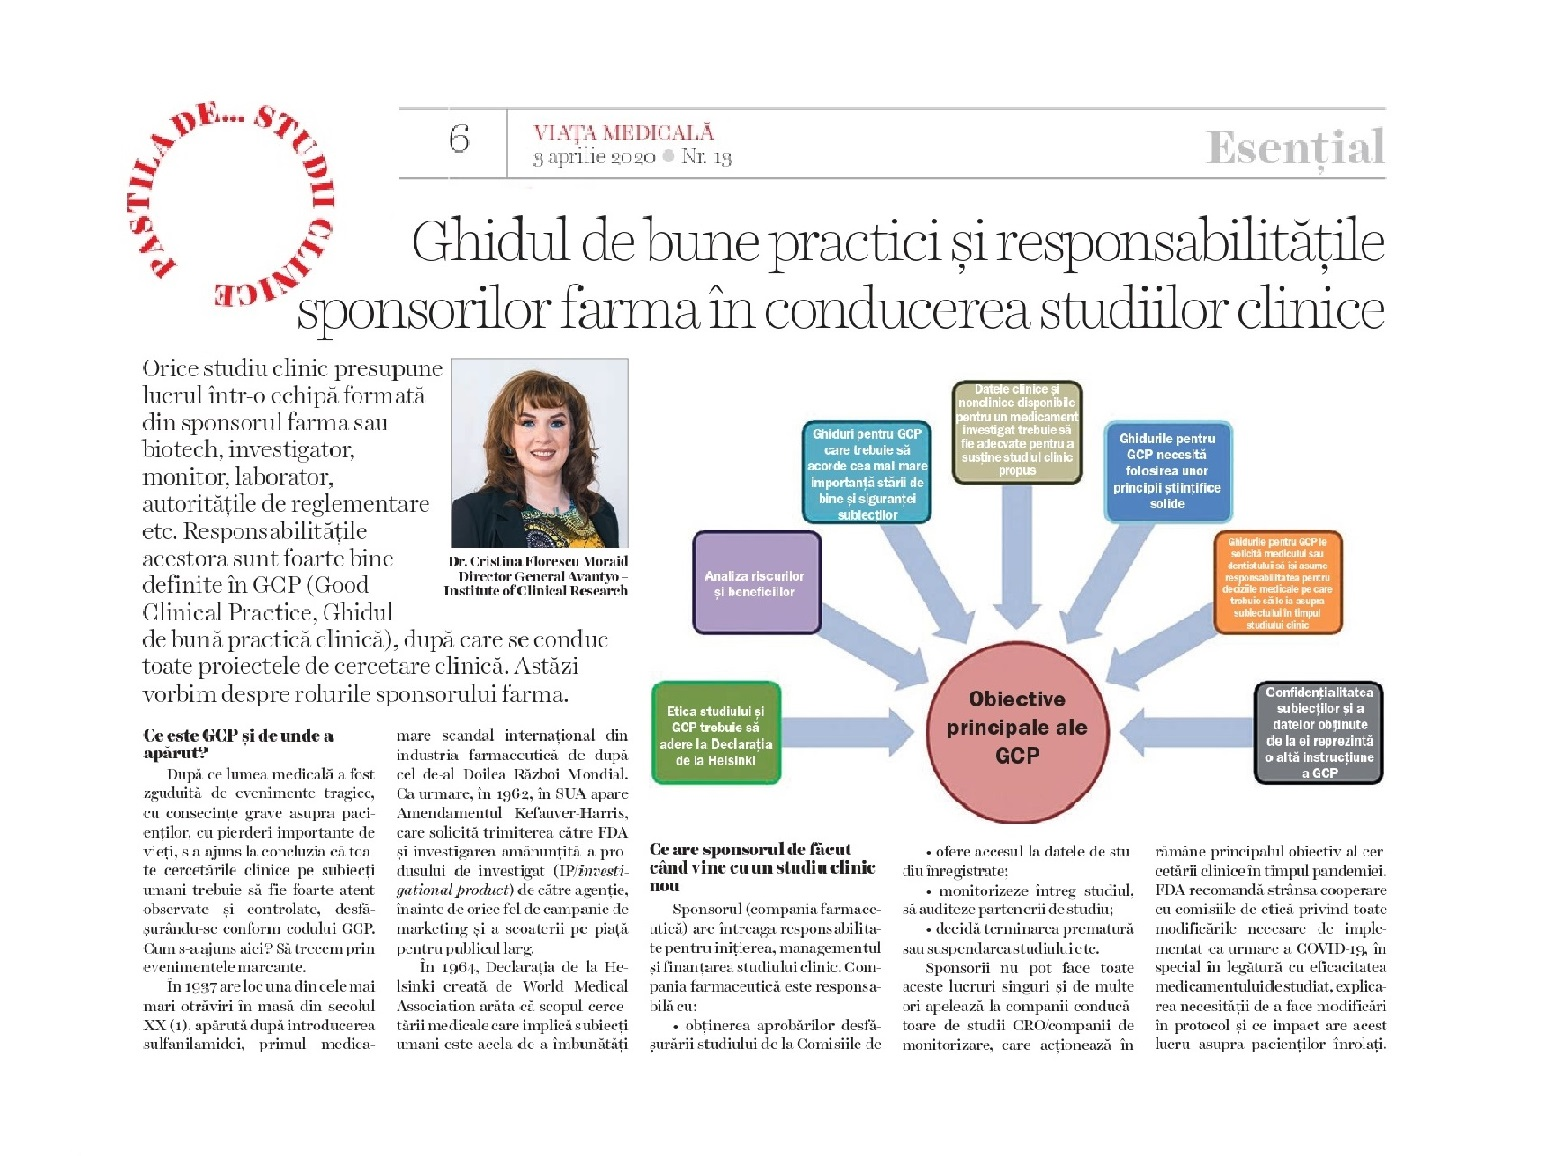 The Good Clinical Practice (GCP) and the responsibilities of  pharma sponsors  - Avantyo article in Viata Medicala magazine